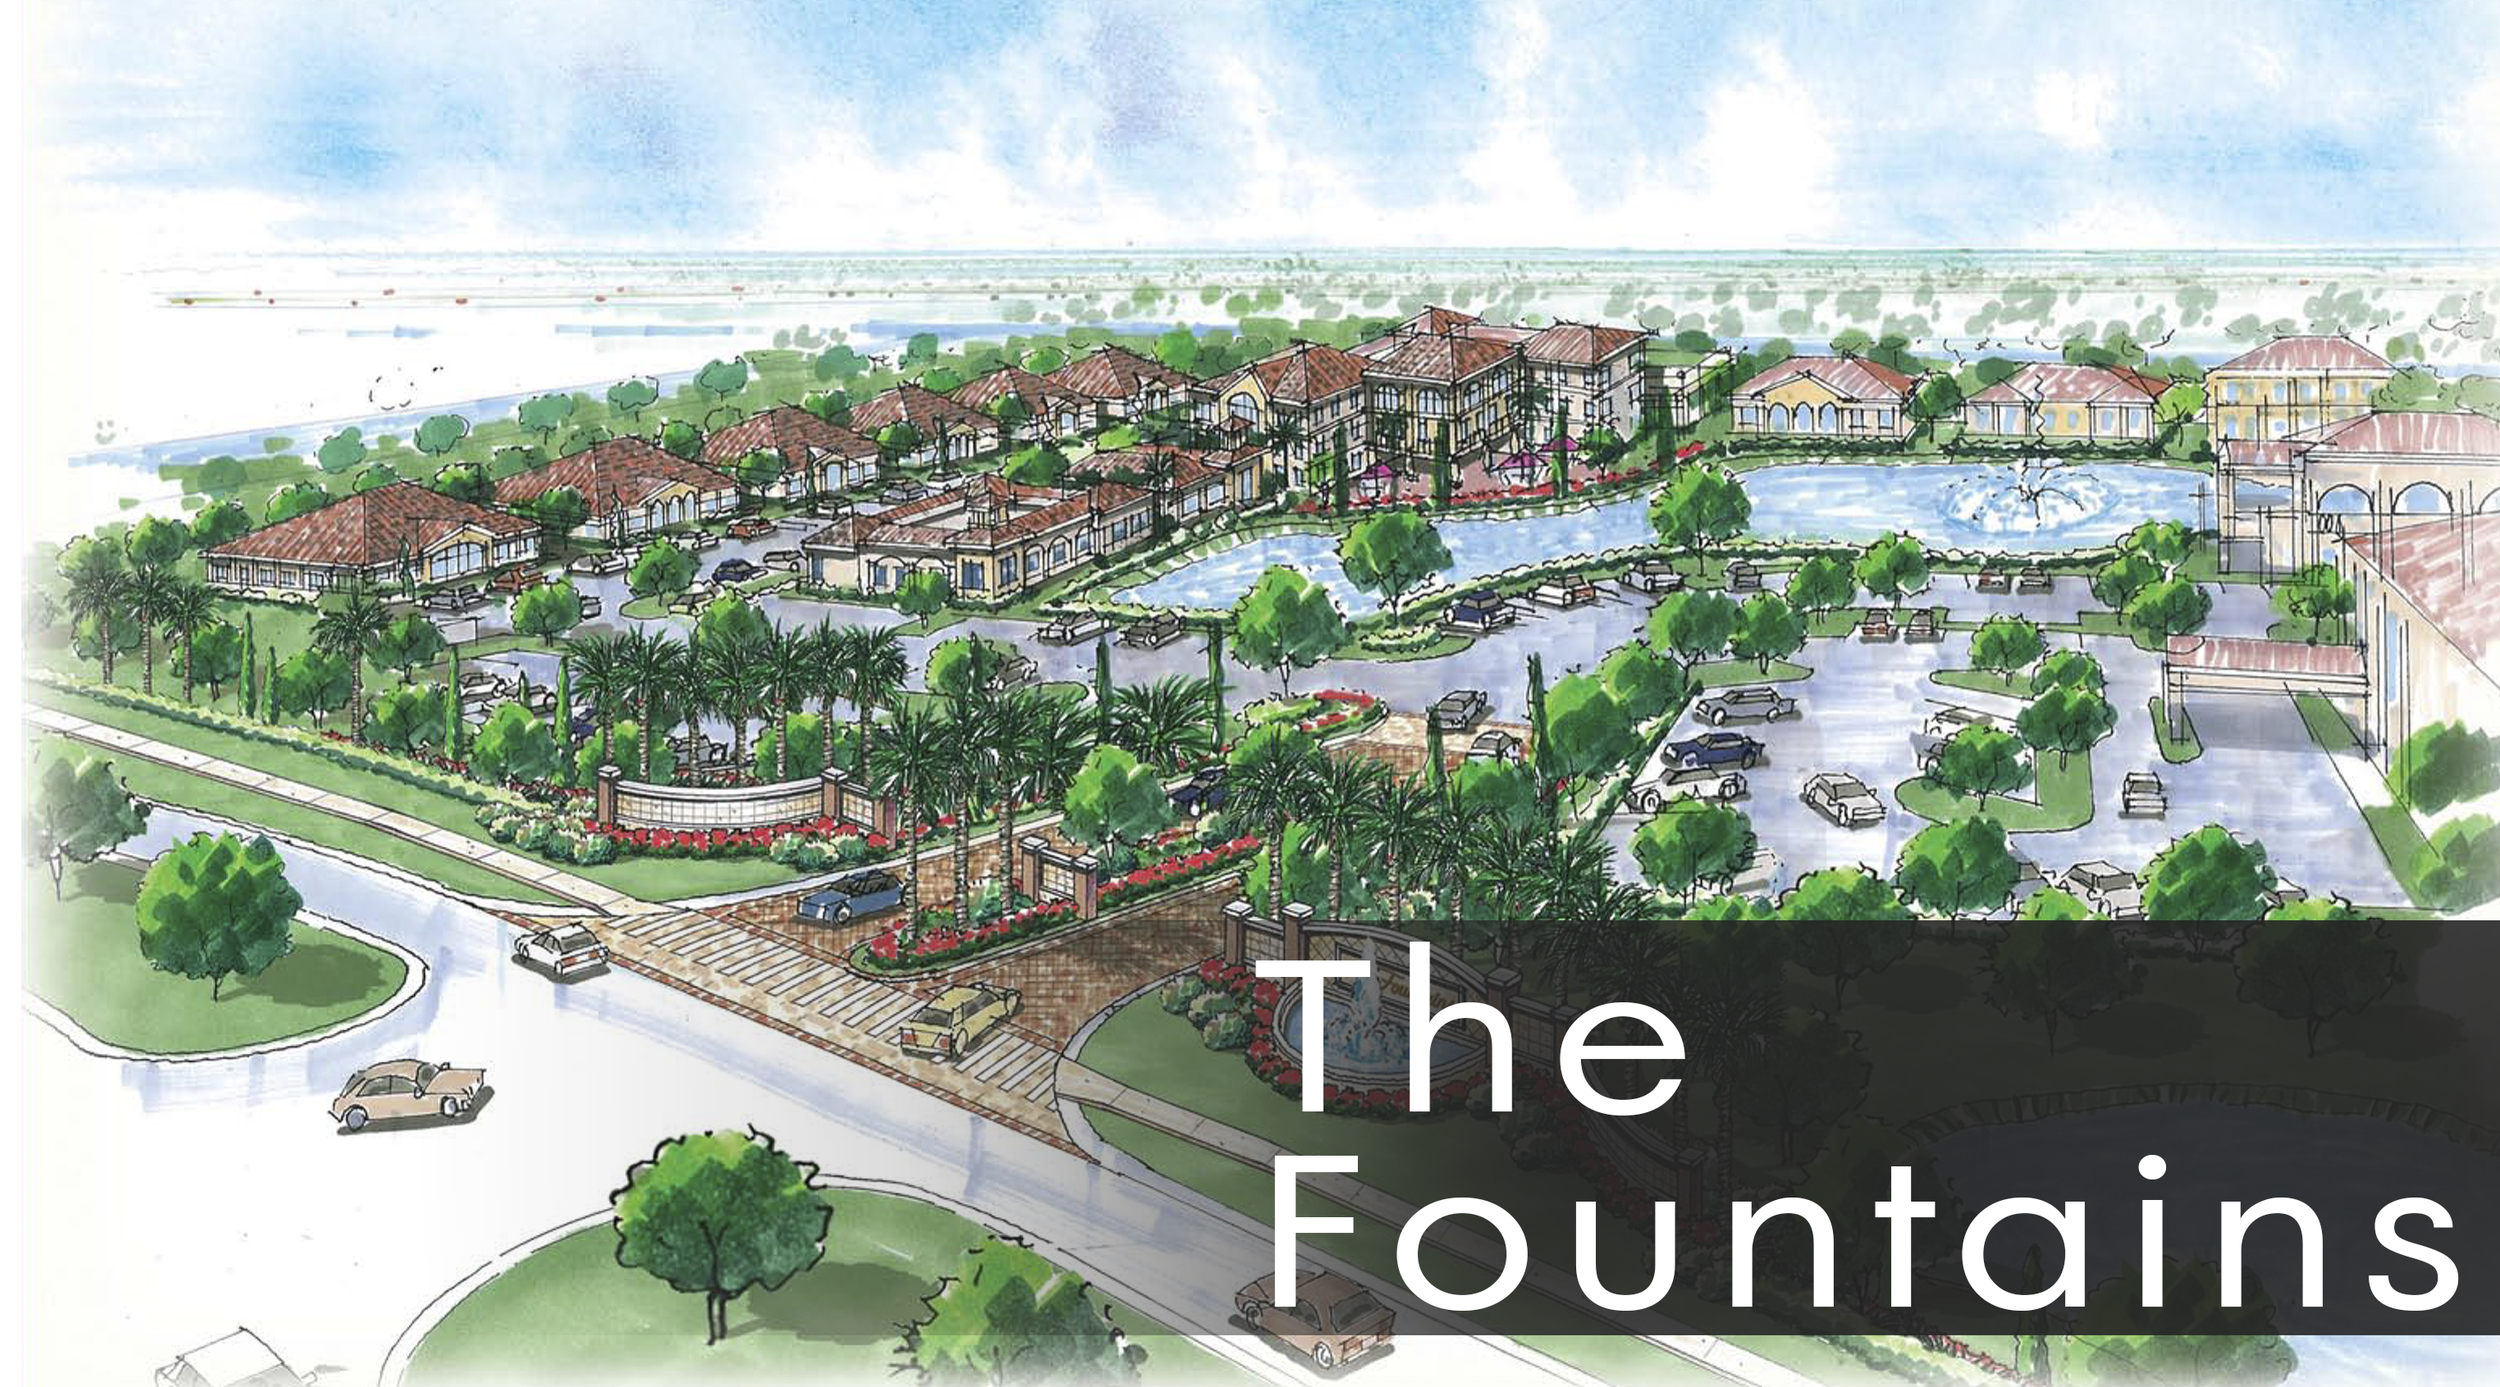 The Fountains at Travoli Place in Winter Garden 50 Acres For Sale & For Lease